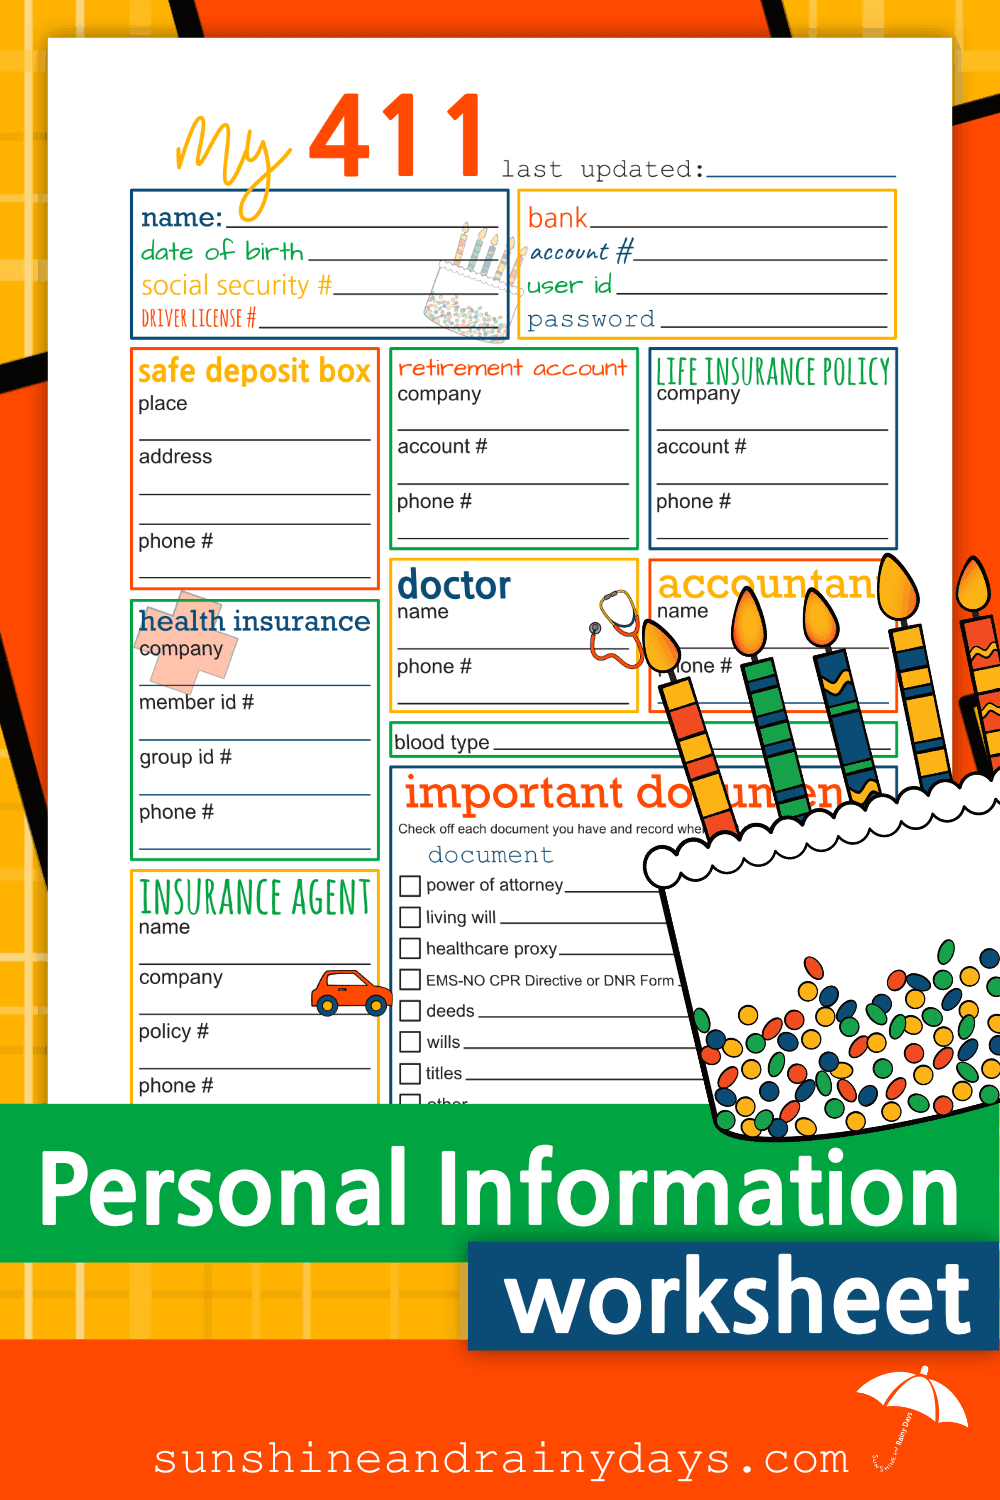 Personal Information Worksheet In Case Of Emergency Health